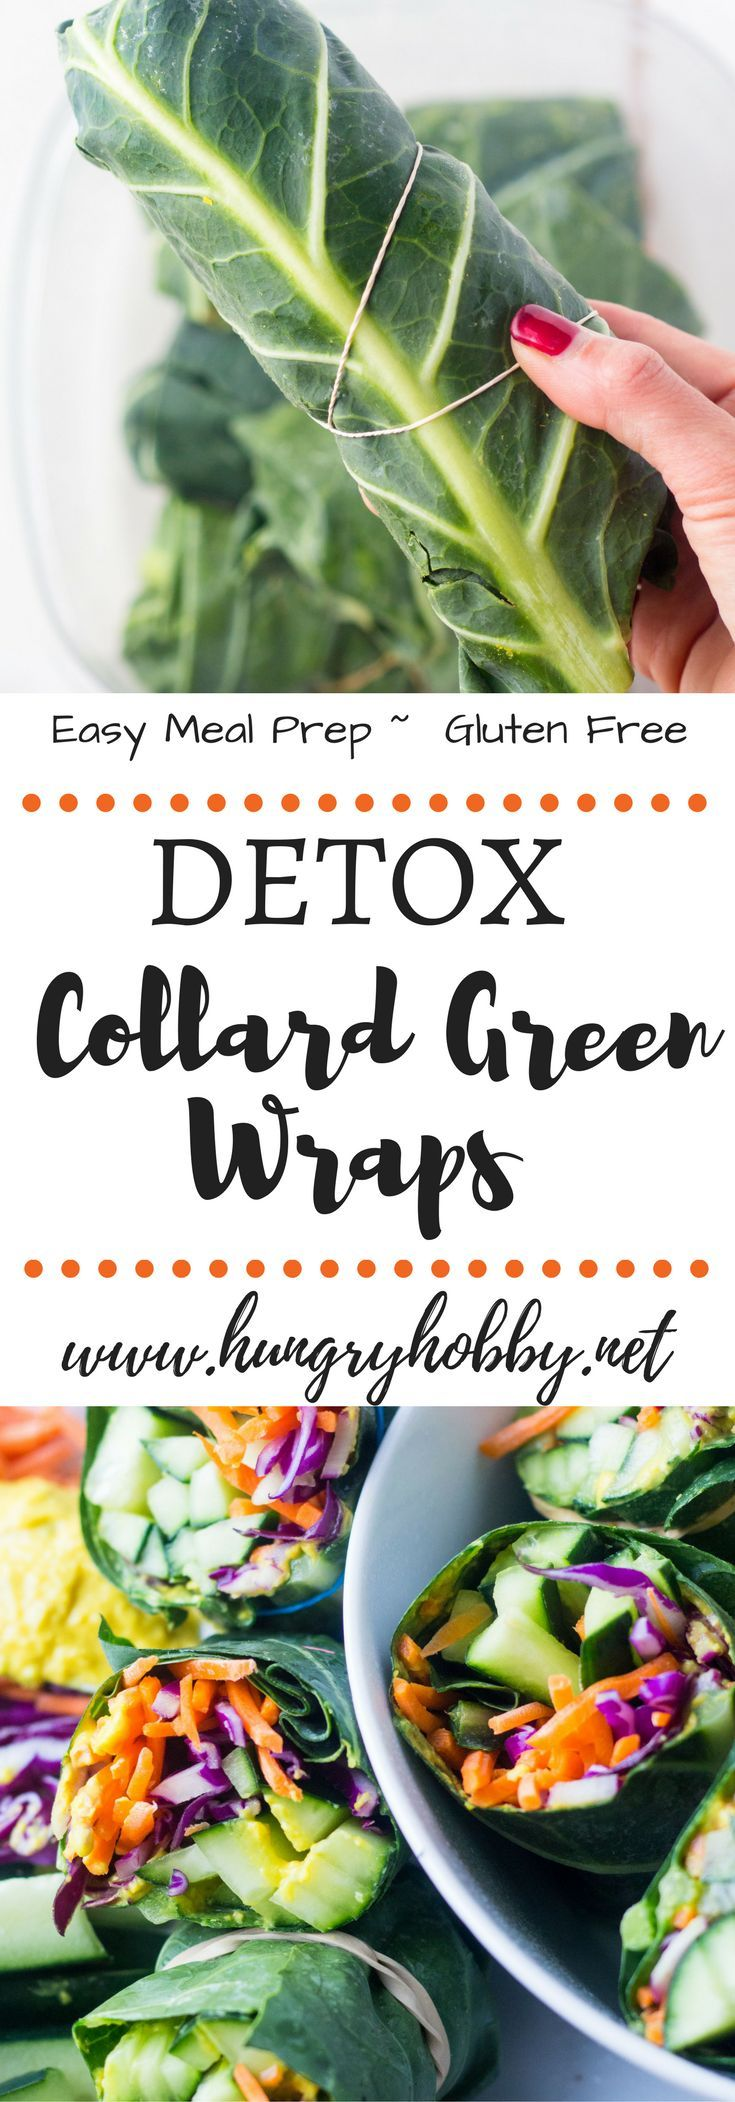 Ready for a reset?  These detox collard green wraps are great for meal prep and will make you feel ultra healthy!  Gluten Free, Vegan, Paleo  via @hungryhobby